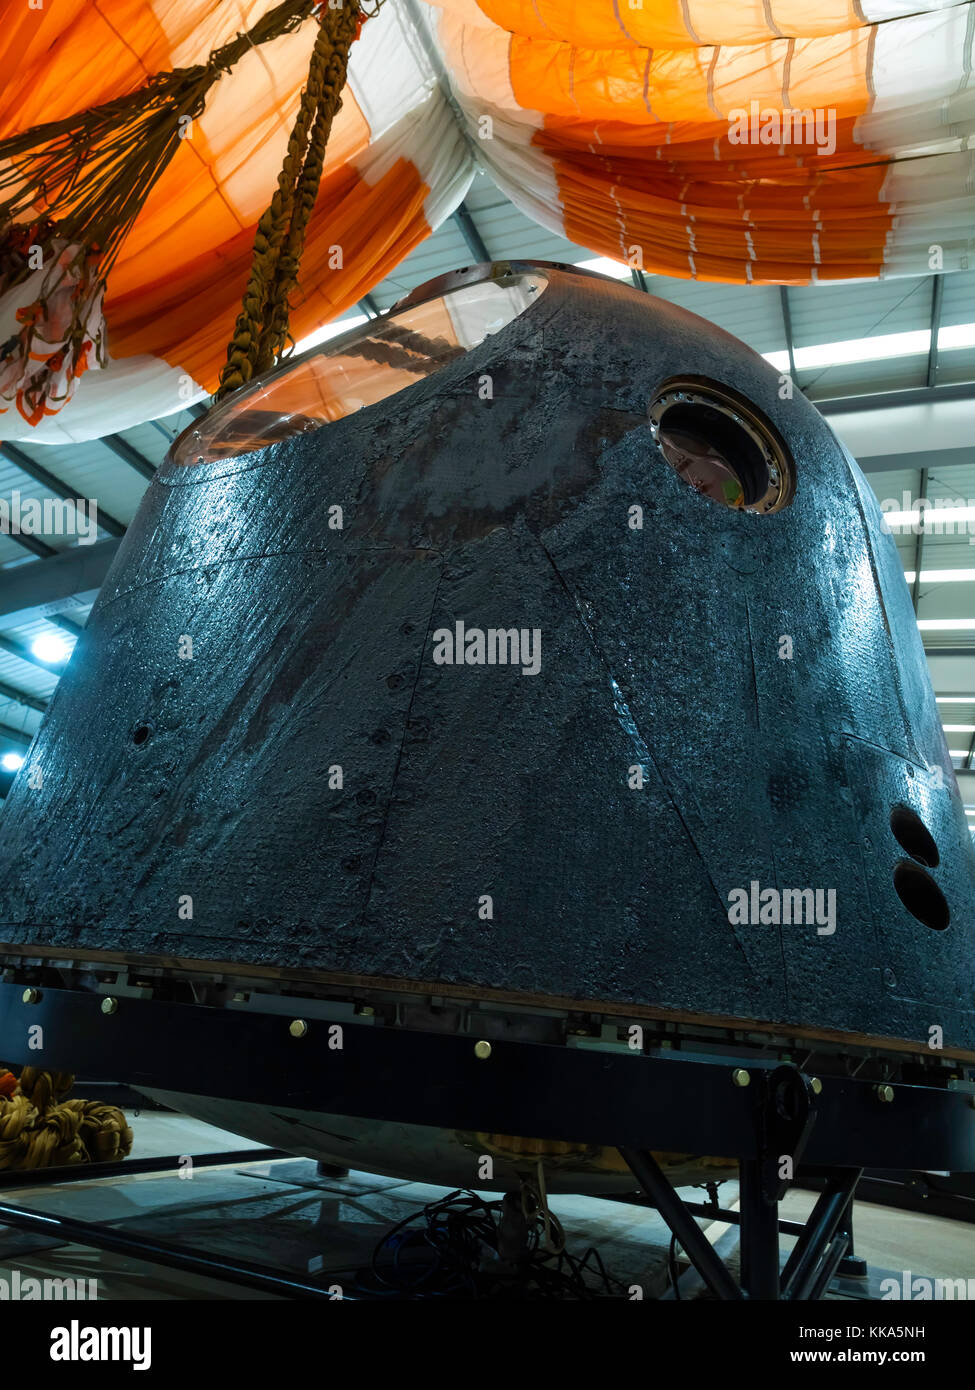 Soyuz Descent Module TMA-19M which brought  Astronaut Major Tim Peake down from International Space Station 2016, - Stock Image